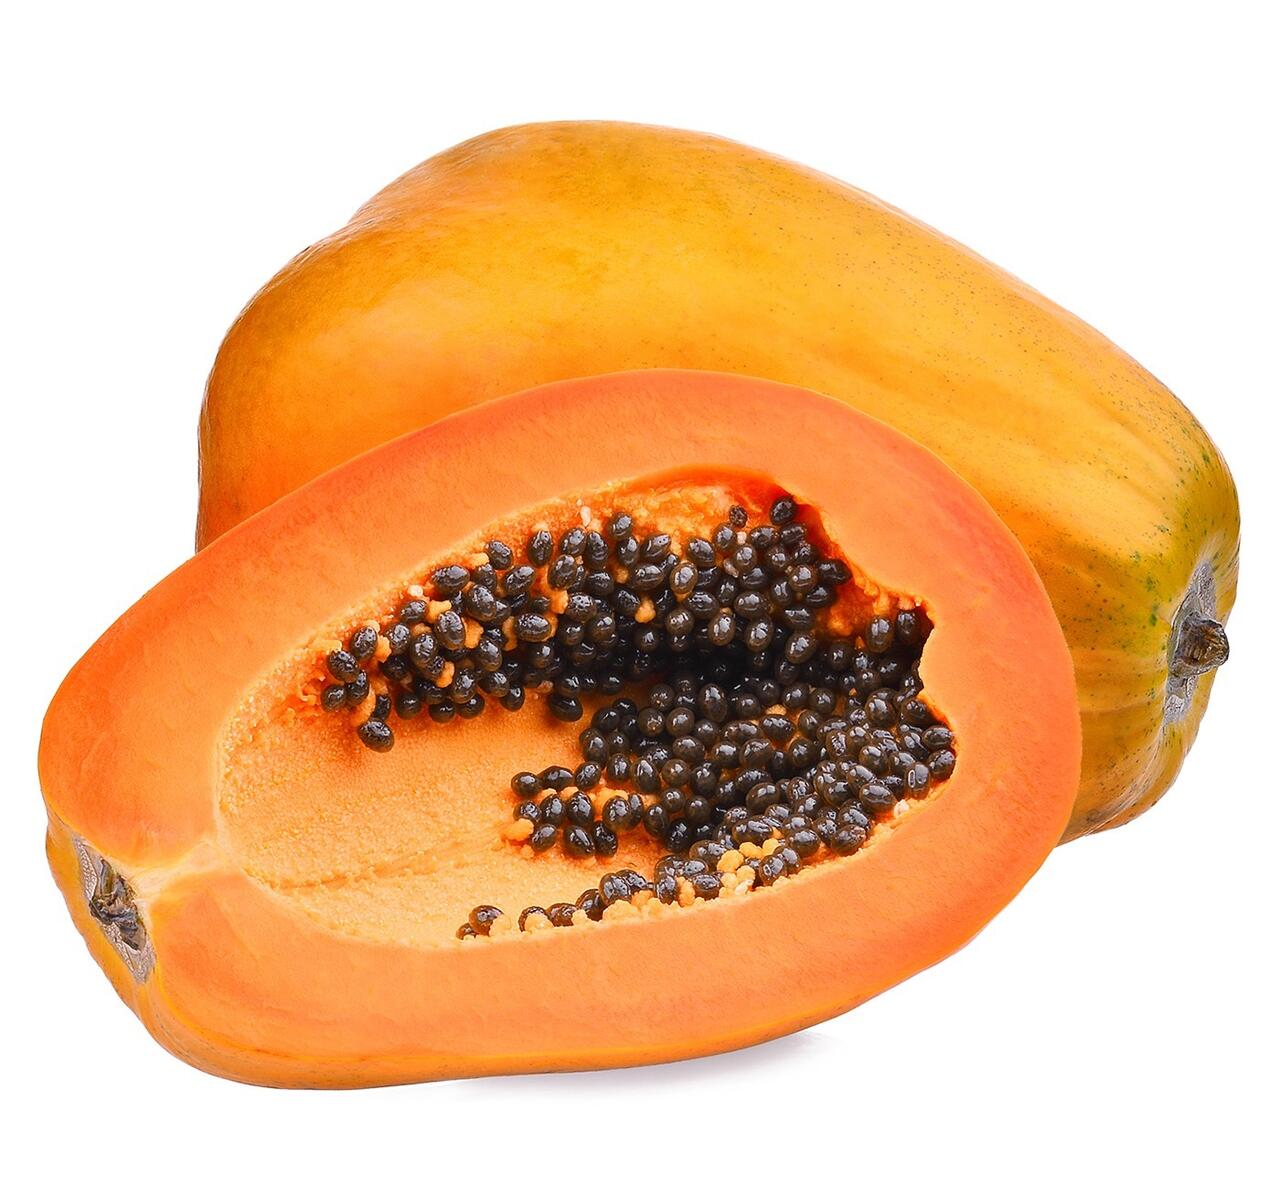 NJ residents getting Salmonella from fresh papayas, CDC warns